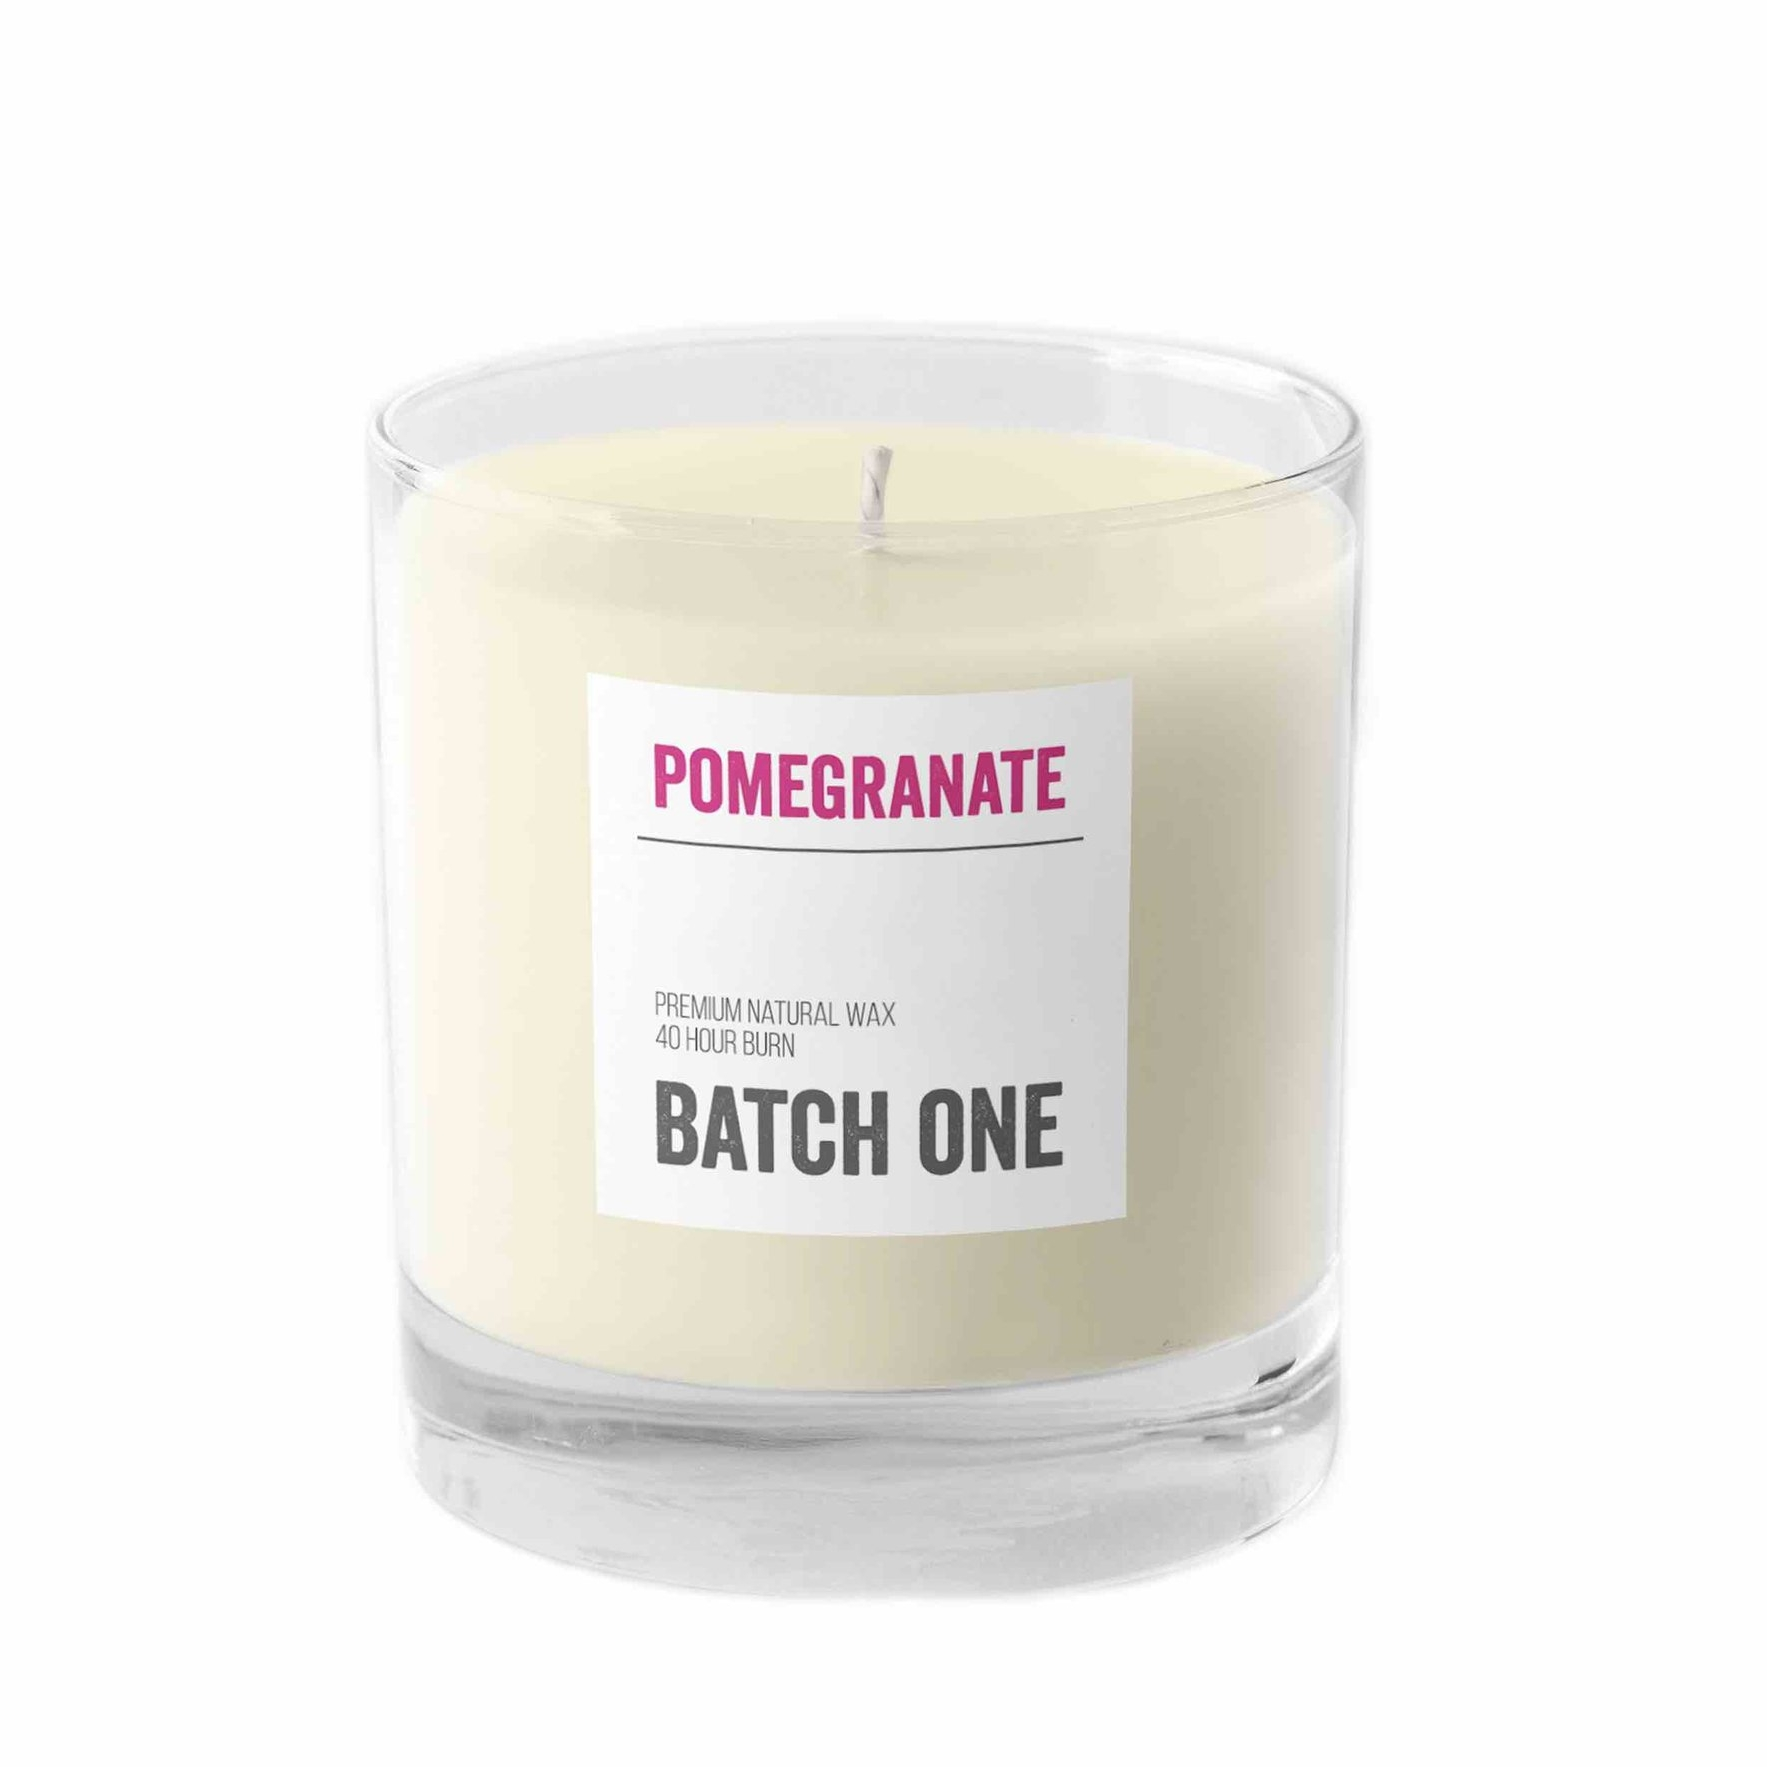 The great candle wax debate - With so many types of candle wax on the market (bee's wax, soy wax natural wax, paraffin wax, coconut wax) it is a bit of a minefield to find the 'best' one for you.We wanted a high quality wax which accentuated our fragrance, burned well, and had the least impact on the environment.